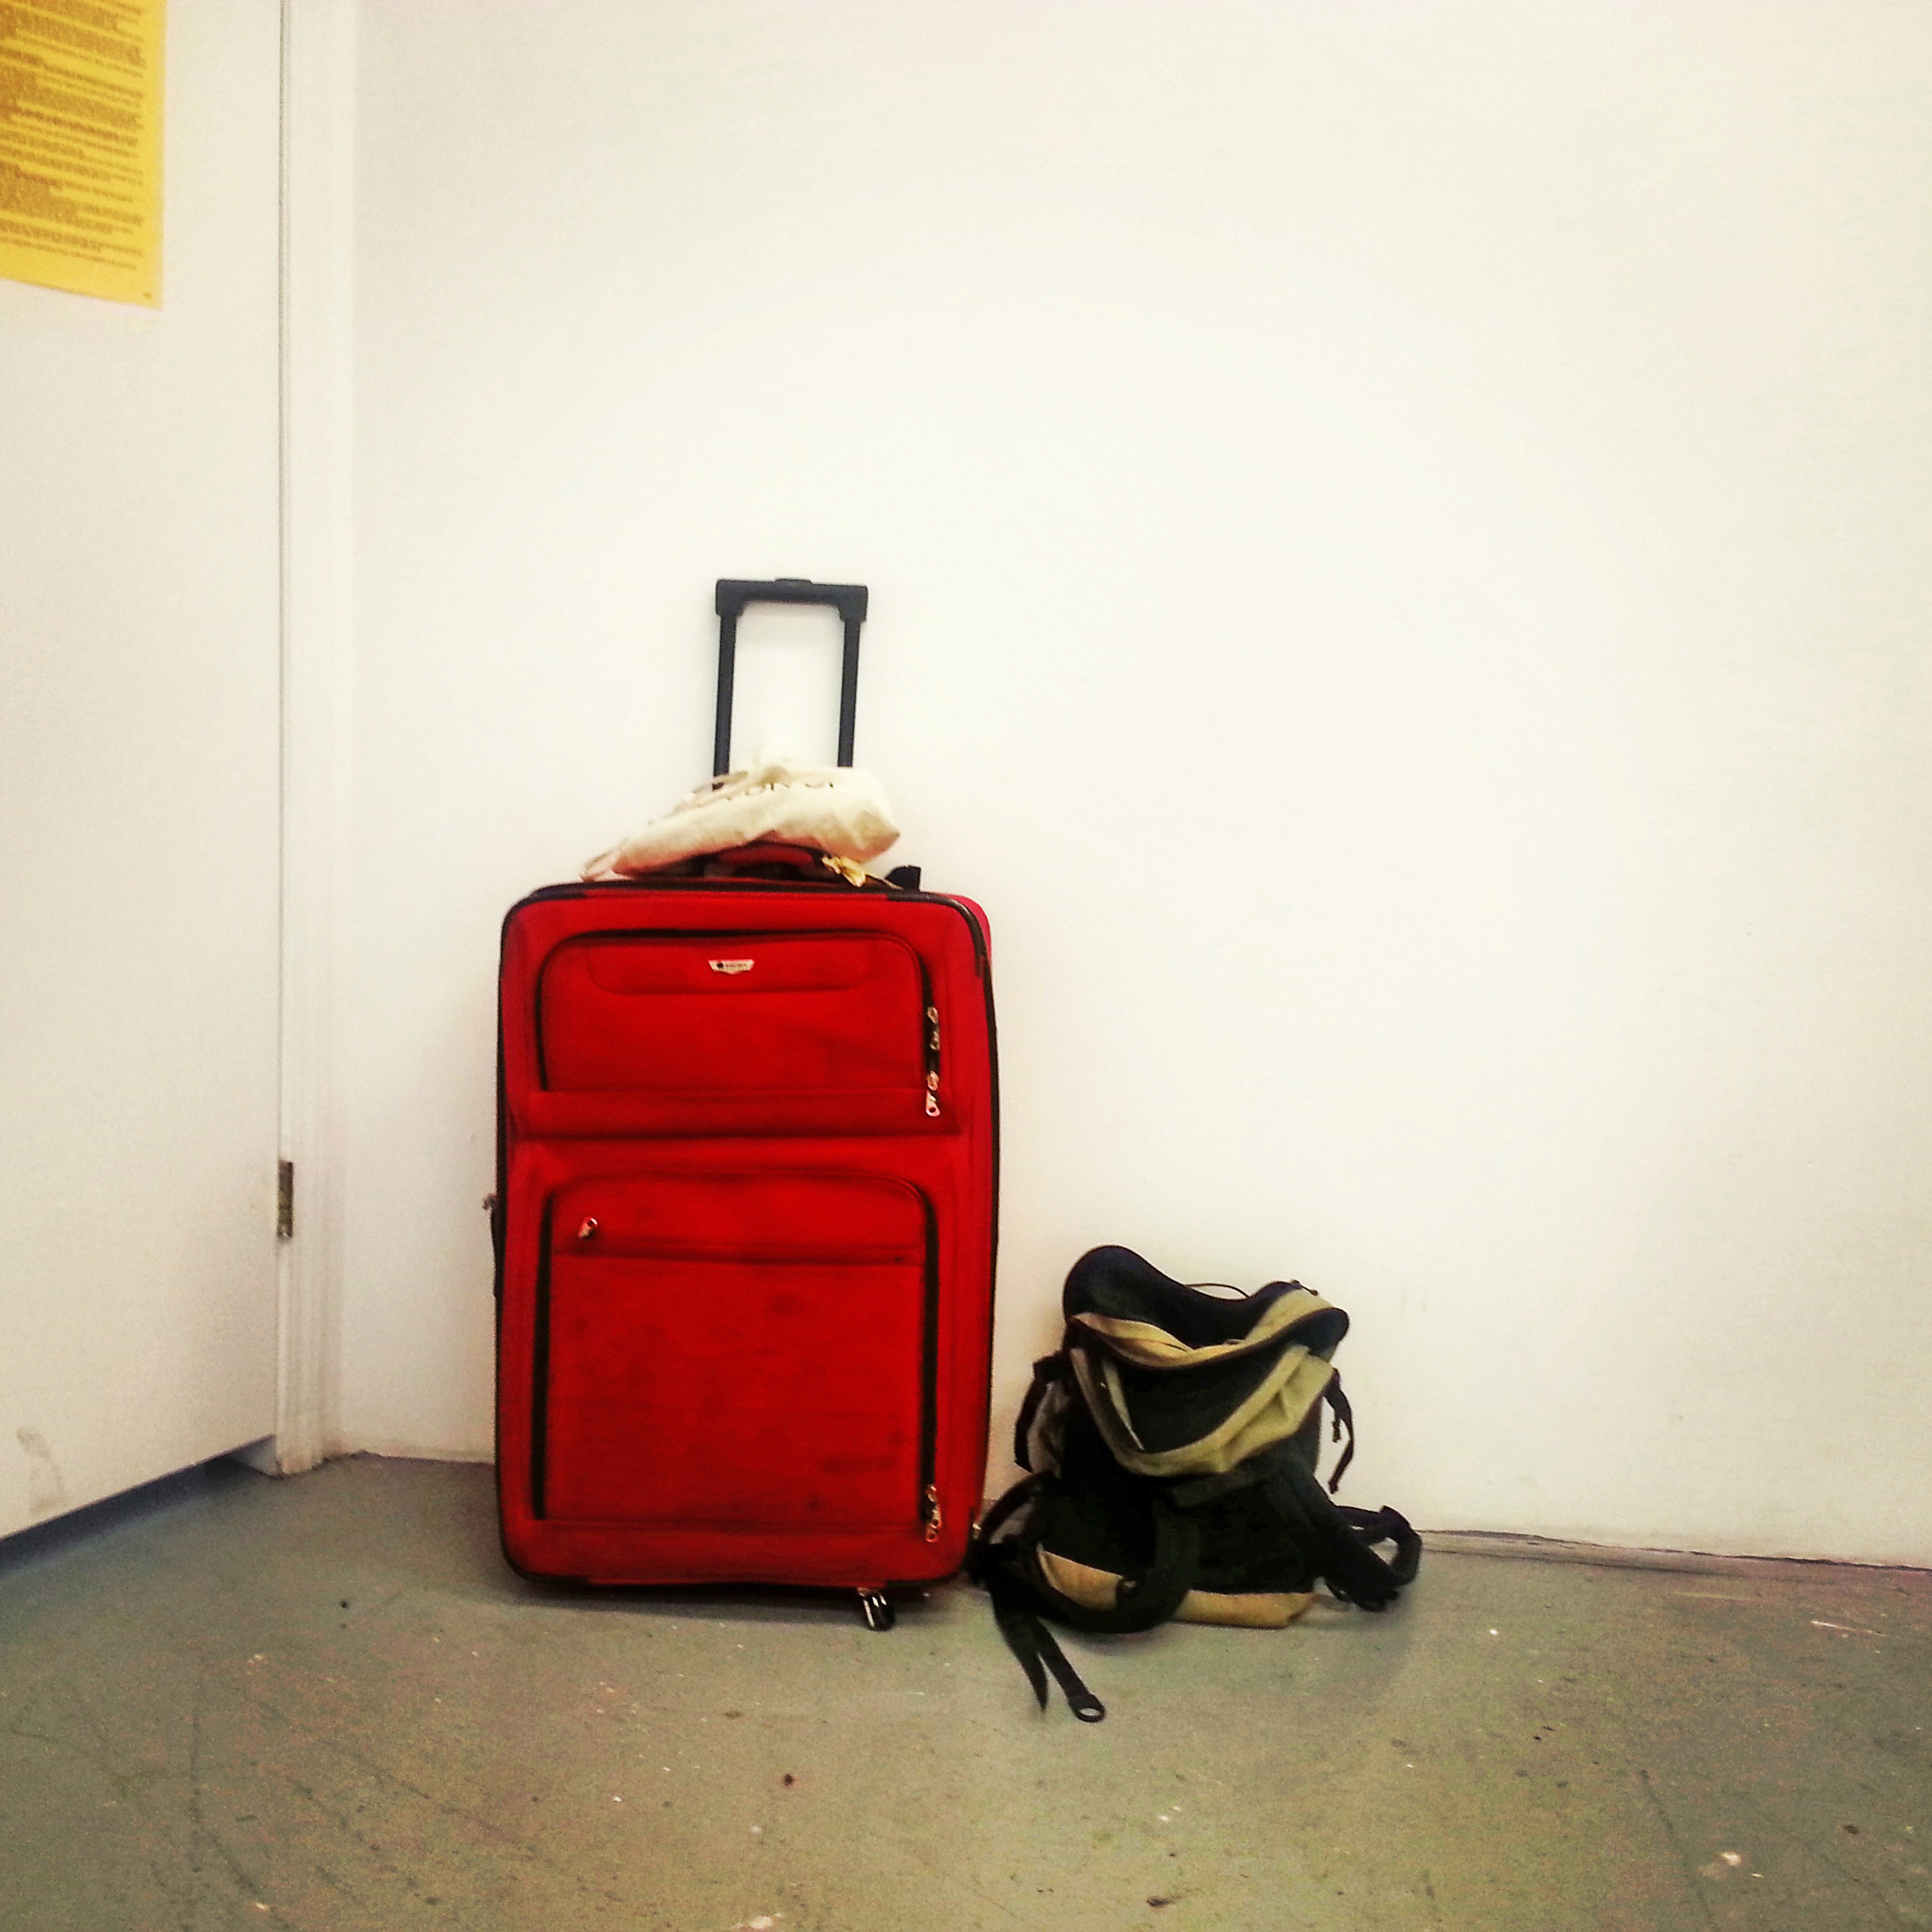 My suitcase has been sitting in the corner of my studio. It feels apropos.